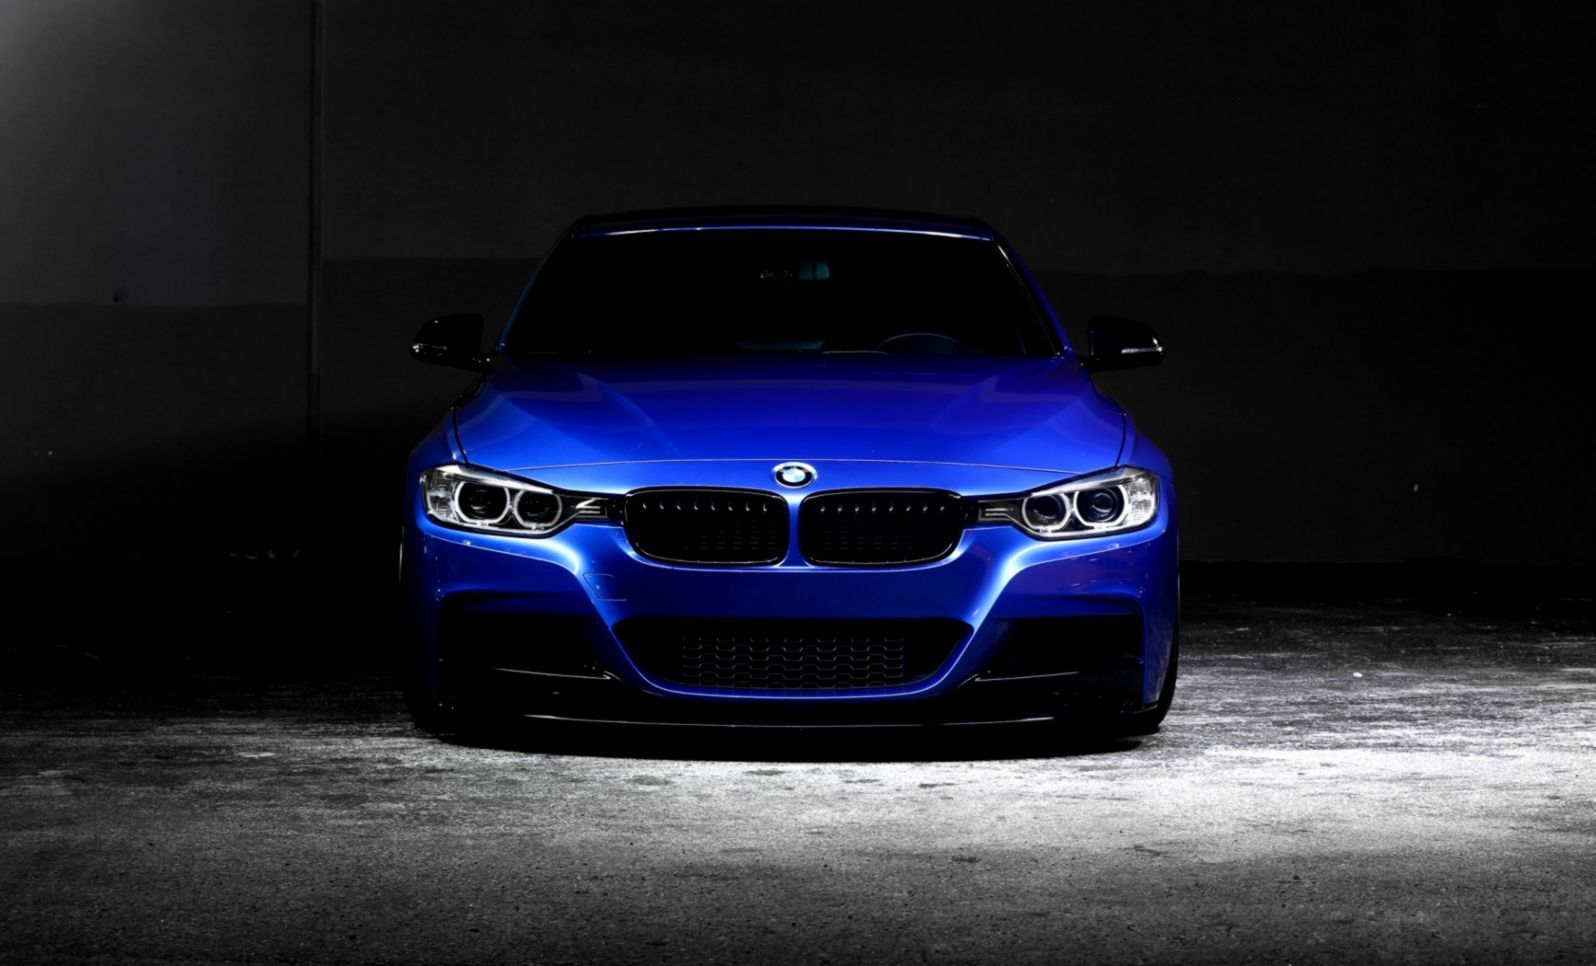 BMW F30 Wallpapers   Top BMW F30 Backgrounds   WallpaperAccess 1596x966